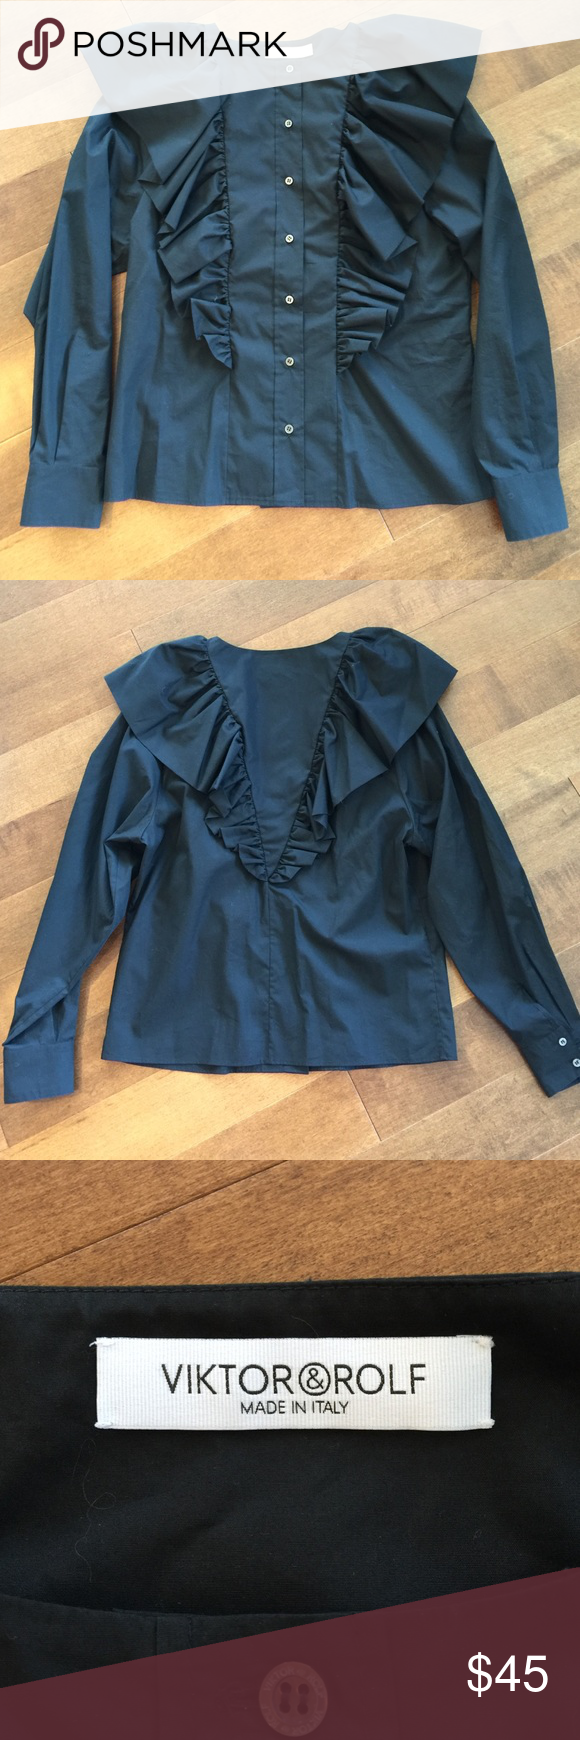 VIKTOR & ROLF Blouse Viktor & Rolf long sleeve blouse in black. 100% cotton. Ruffles details in front and back. Made in Italy. Size 40 US 6 Viktor & Rolf Tops Blouses